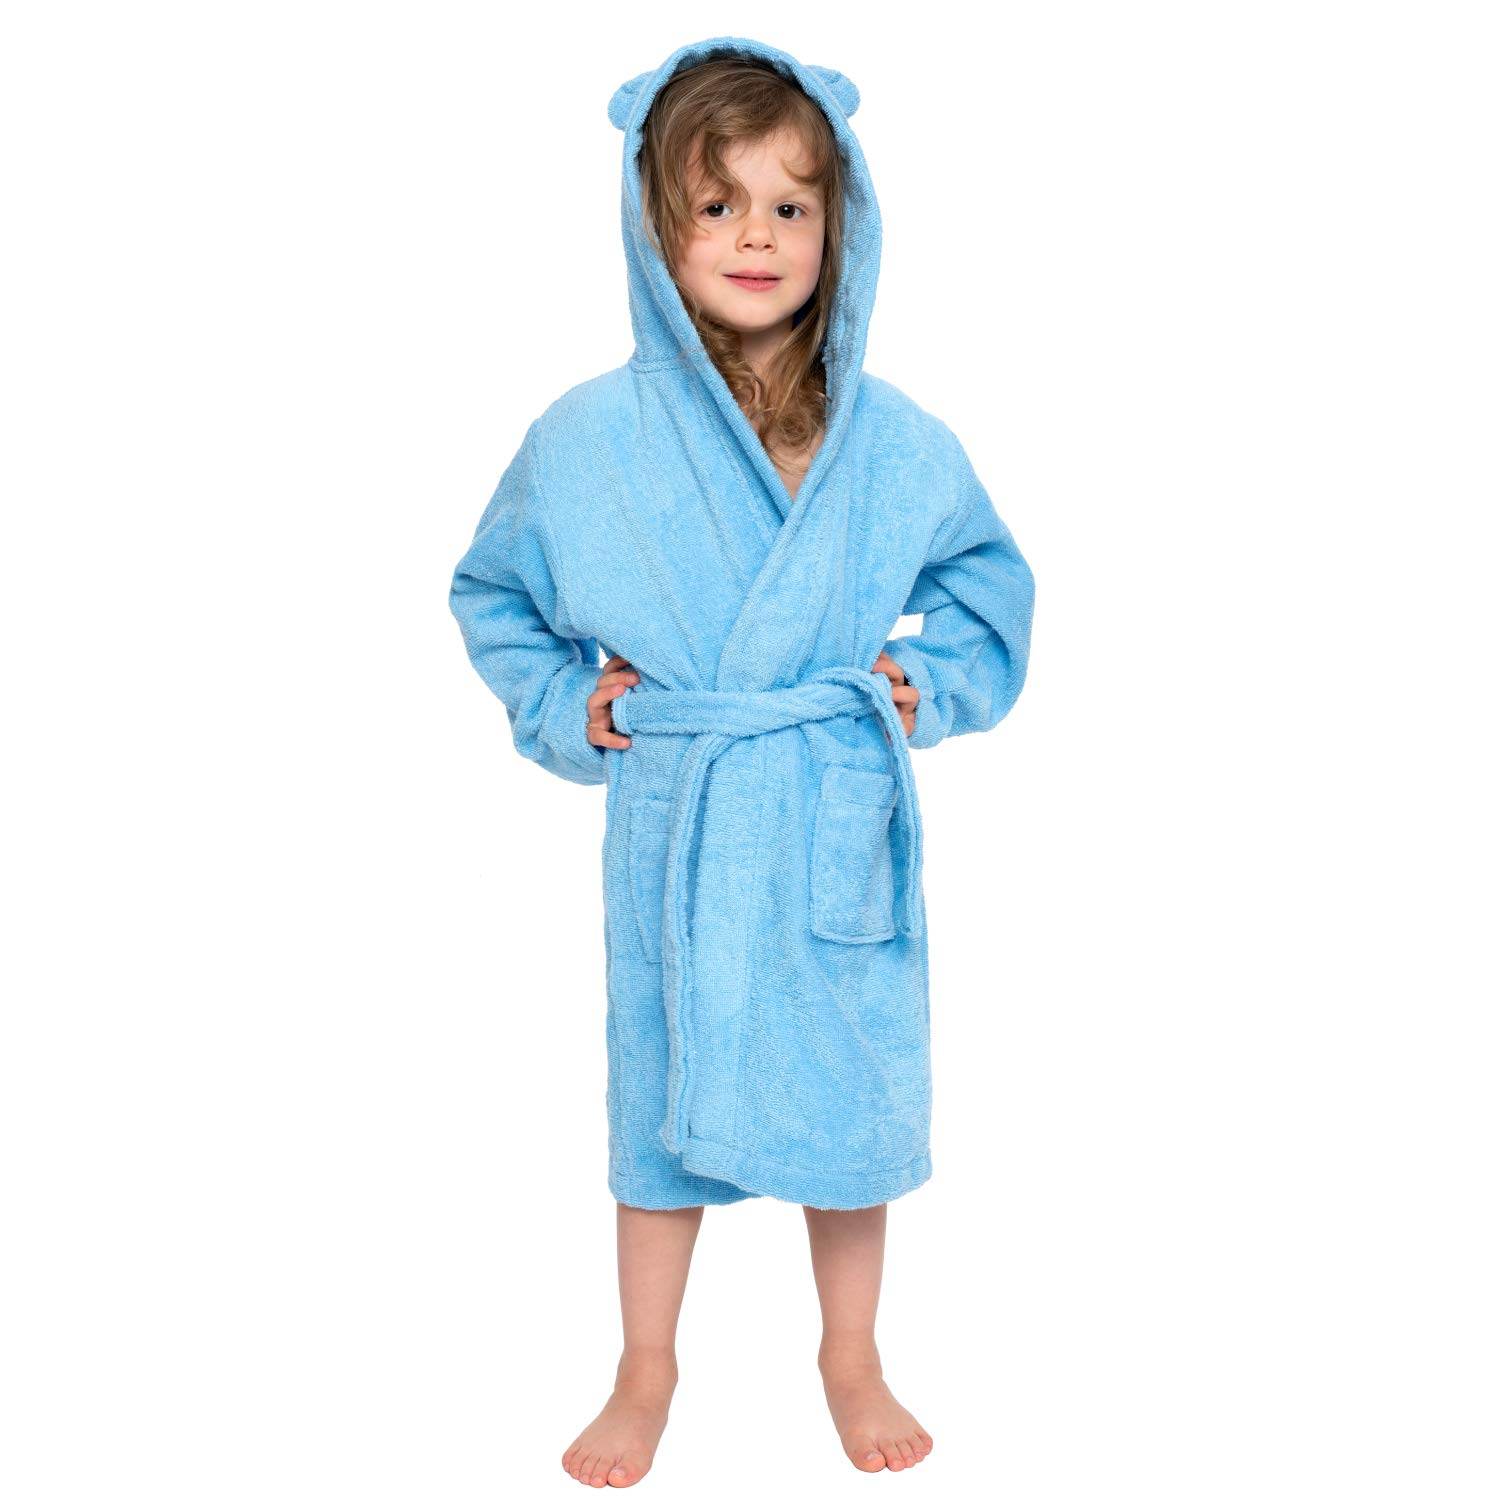 Free from Chemical Products Oeko TEX Girls Dressing Gown 100/% Cotton Boys Dressing Gown with 2 Pockets Hood with Ears Boys Twinzen Bathrobe for Babies